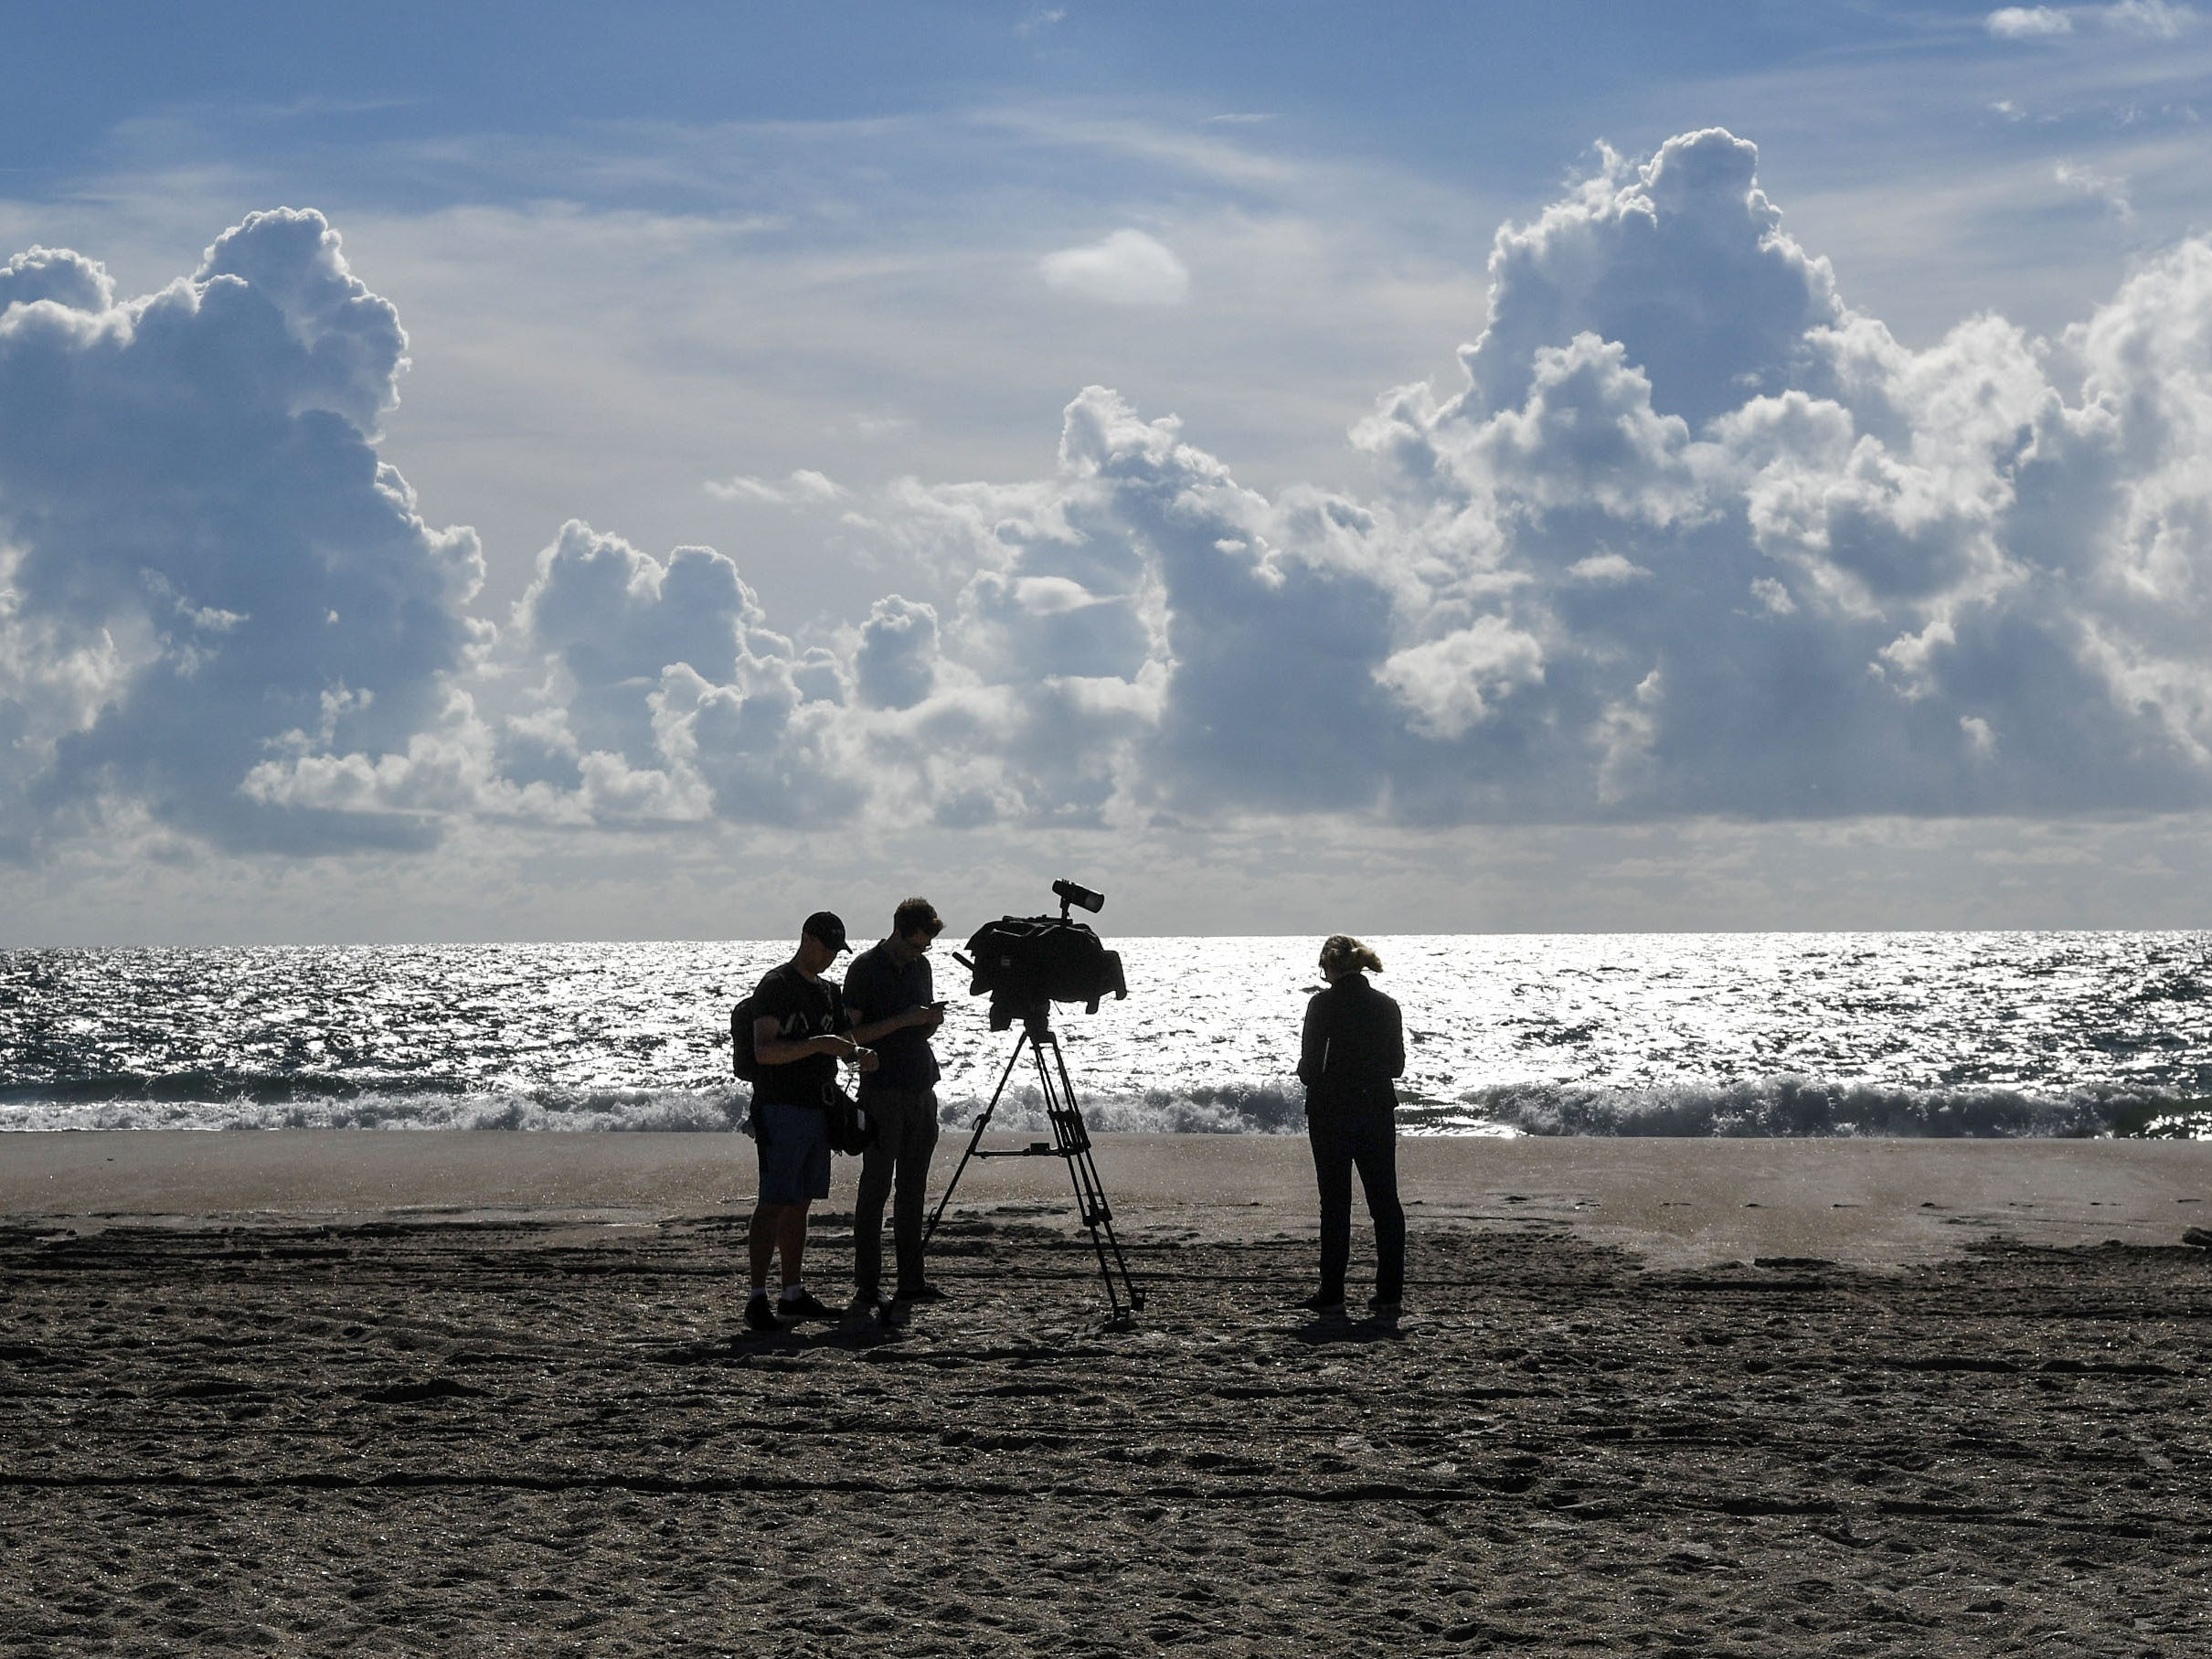 A news crew pauses between segments at Wrightsville Beach in Wilmington N.C. on Sept. 12, 2018.